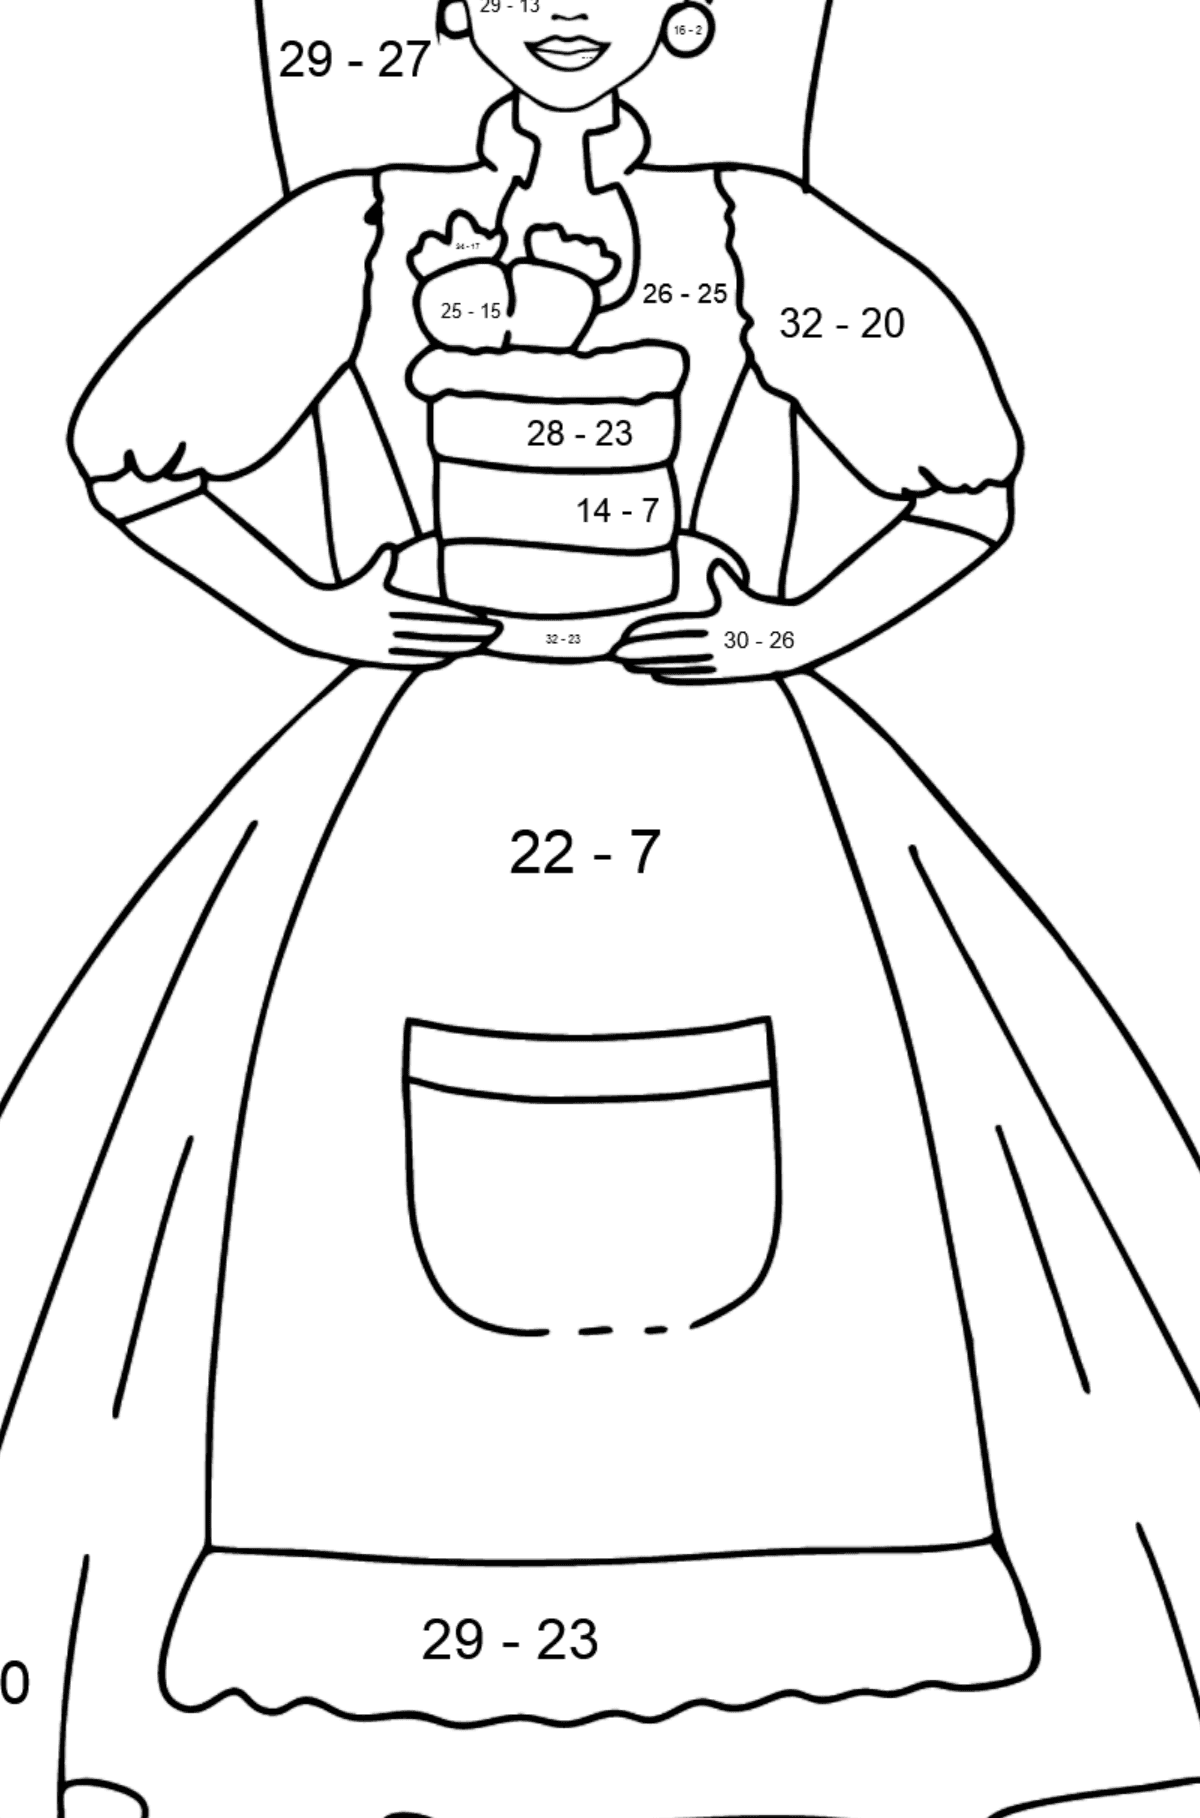 Barbie Doll and Cake coloring page - Math Coloring - Subtraction for Kids